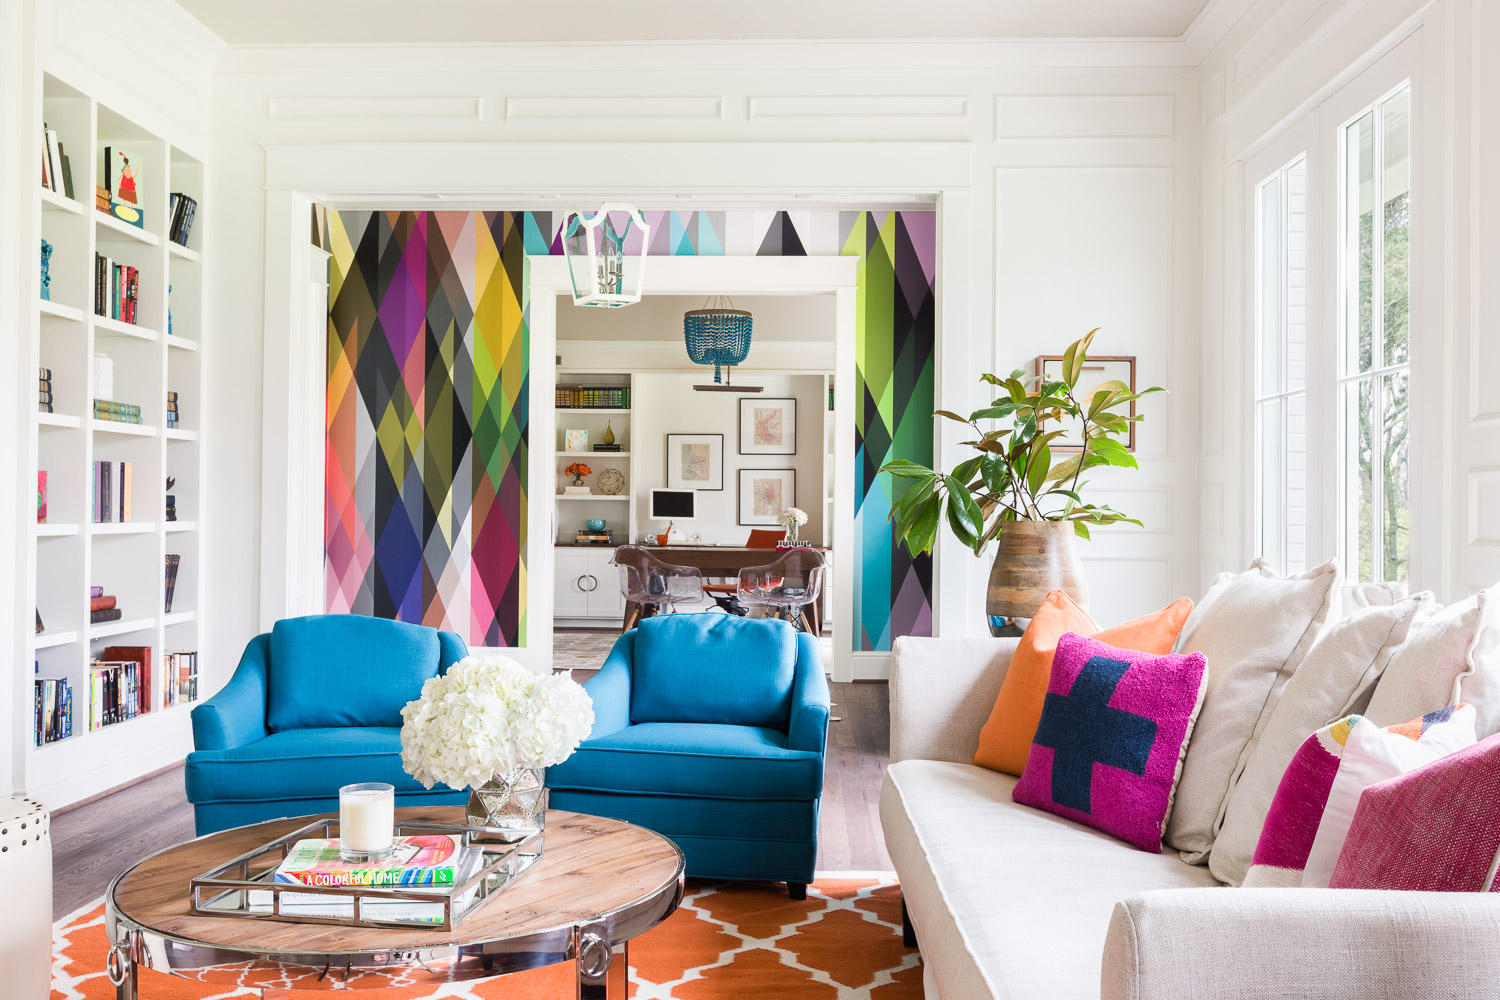 Eye of the designer emily lister interiors for Colorful living room ideas with pictures